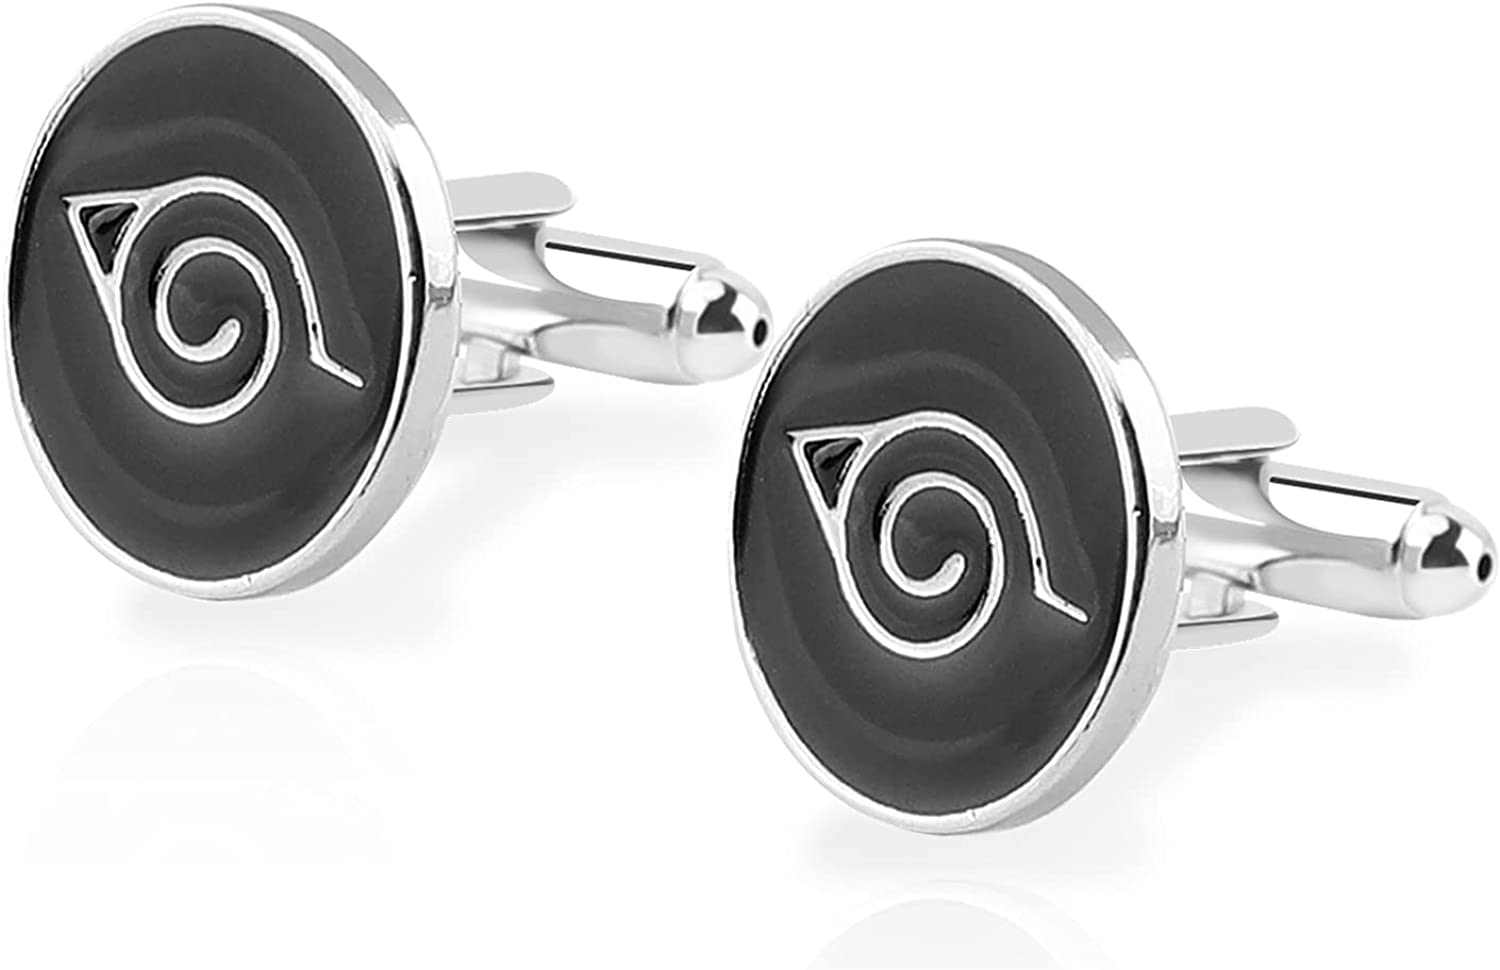 Anime Classic Cufflinks for Men Formal Wear Anime Tie Clips For Men Party Shirt Cufflink with Gift Box